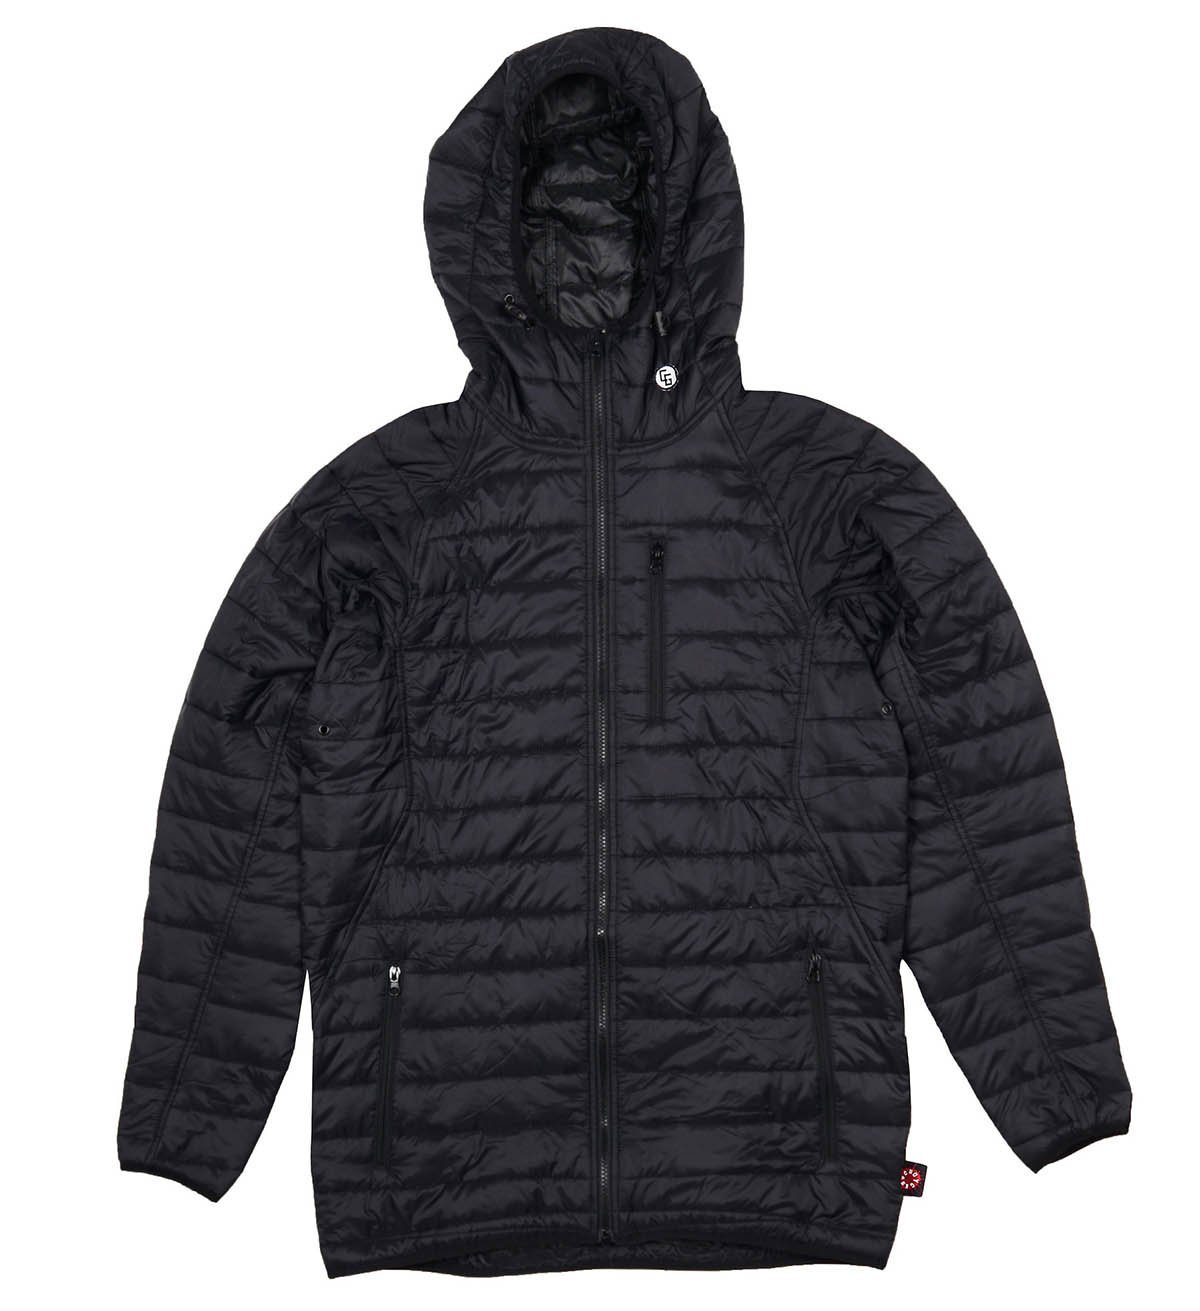 CandyGrind Men's Sleeping Bag Hoodie 19/20